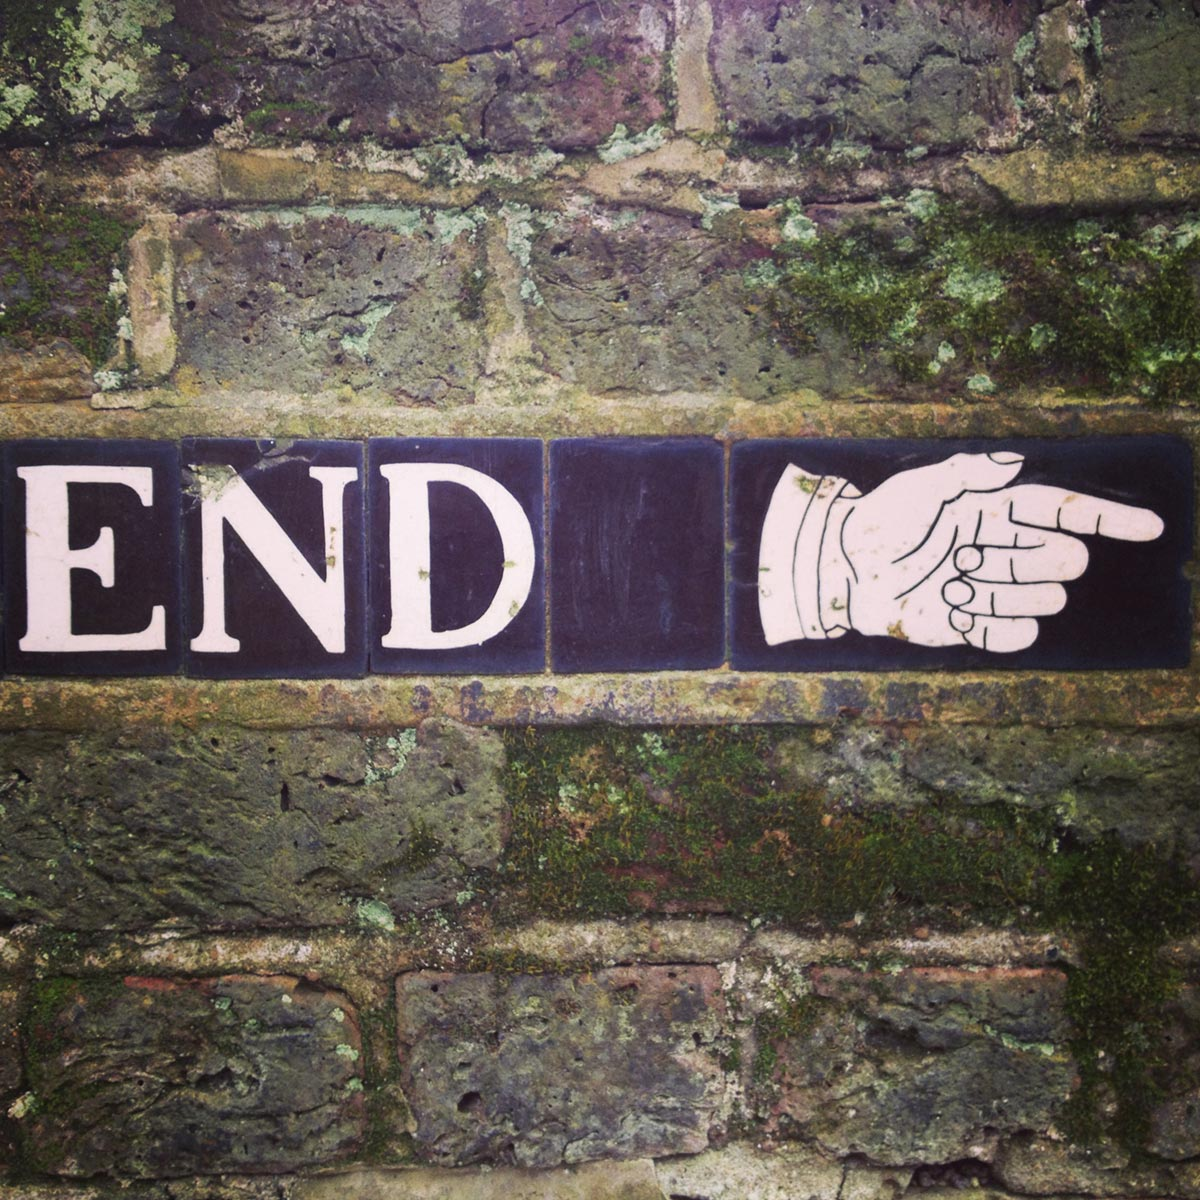 End - nice typography